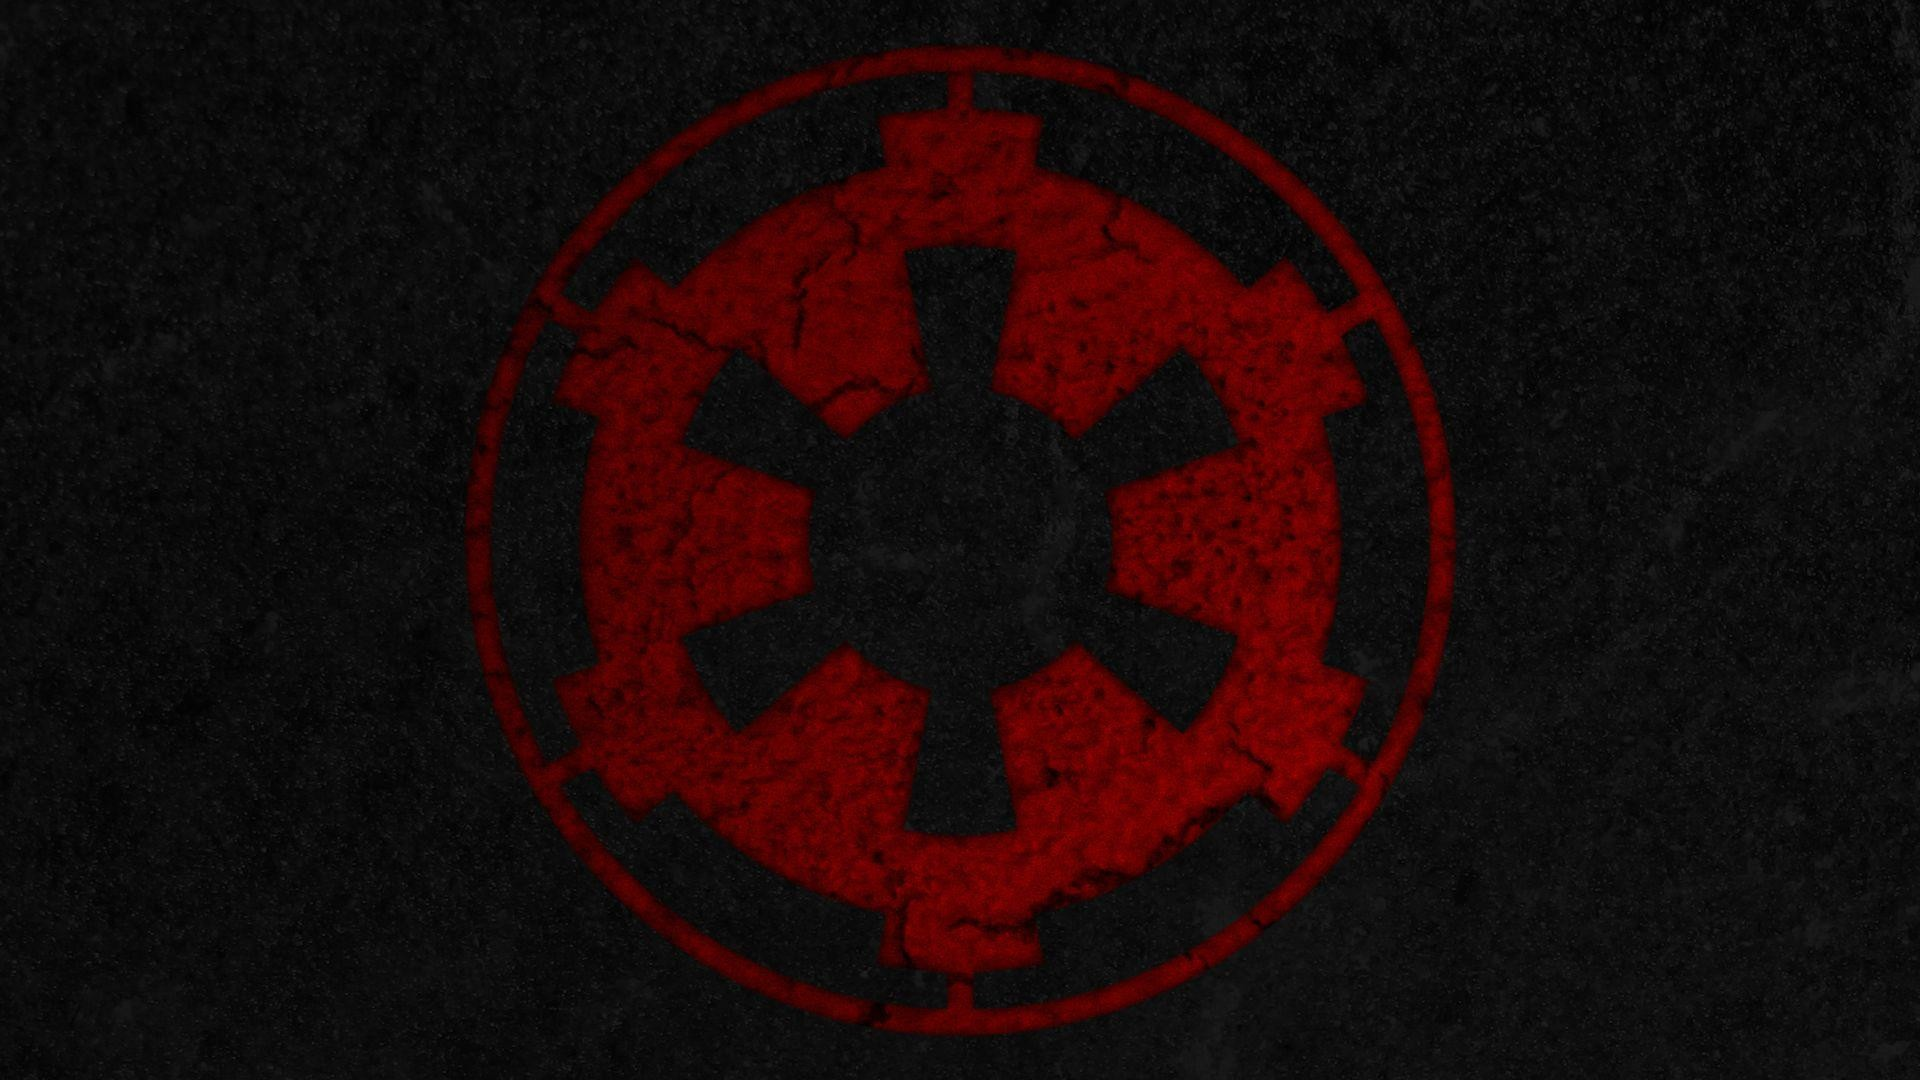 1920x1080 Empire - Star Wars Wallpaper for Phones and Tablets